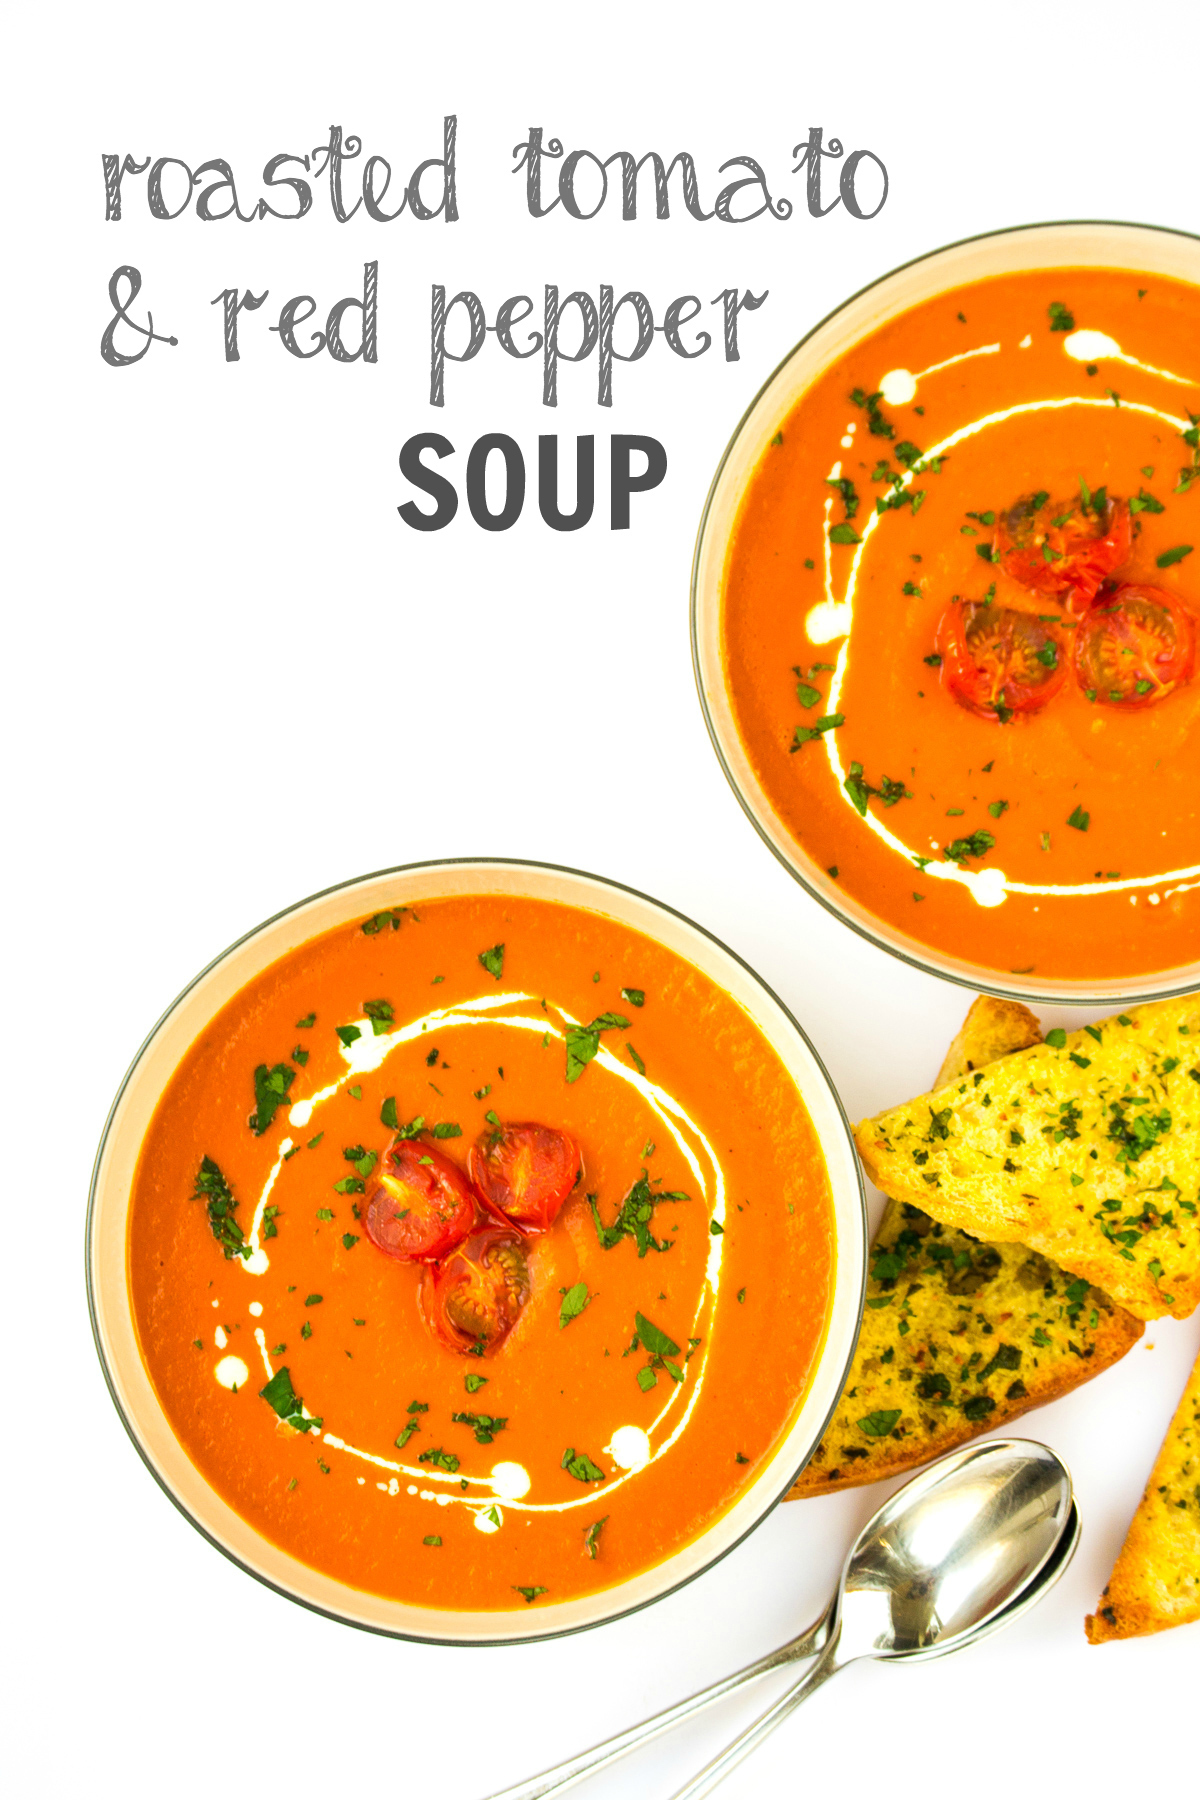 Recipe: Roasted Tomato & Red Pepper Soup